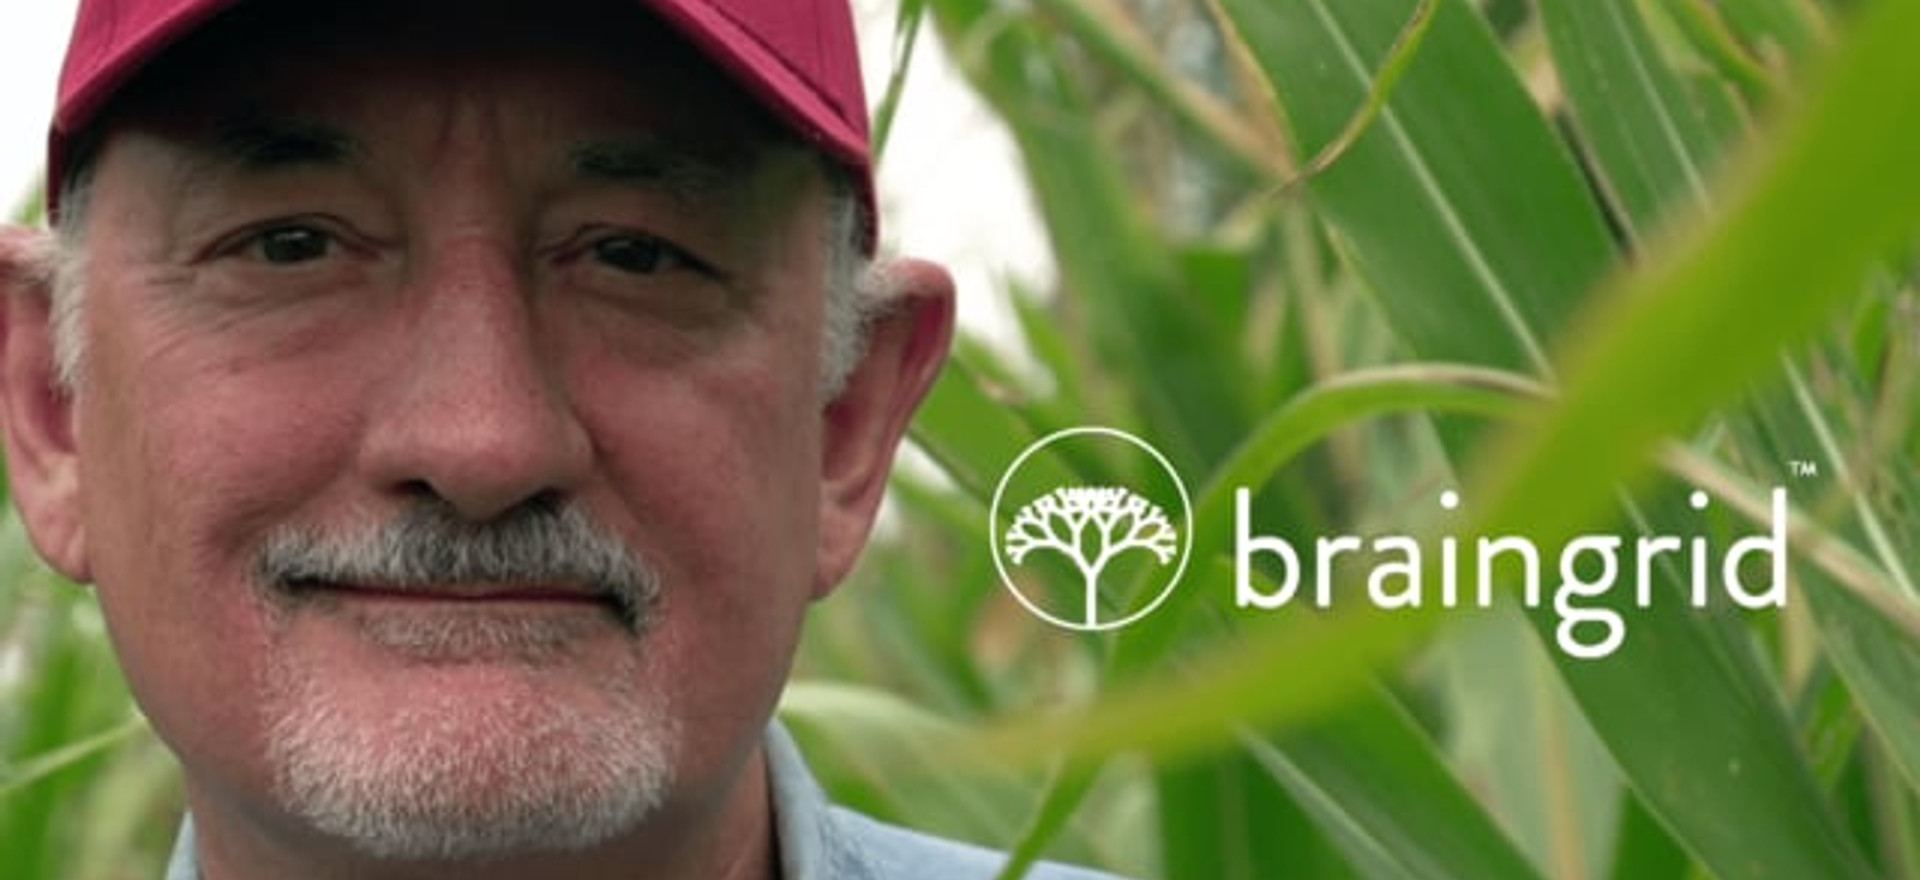 "Braingrid / ""Braingrid's Precision Agriculture Solution"""